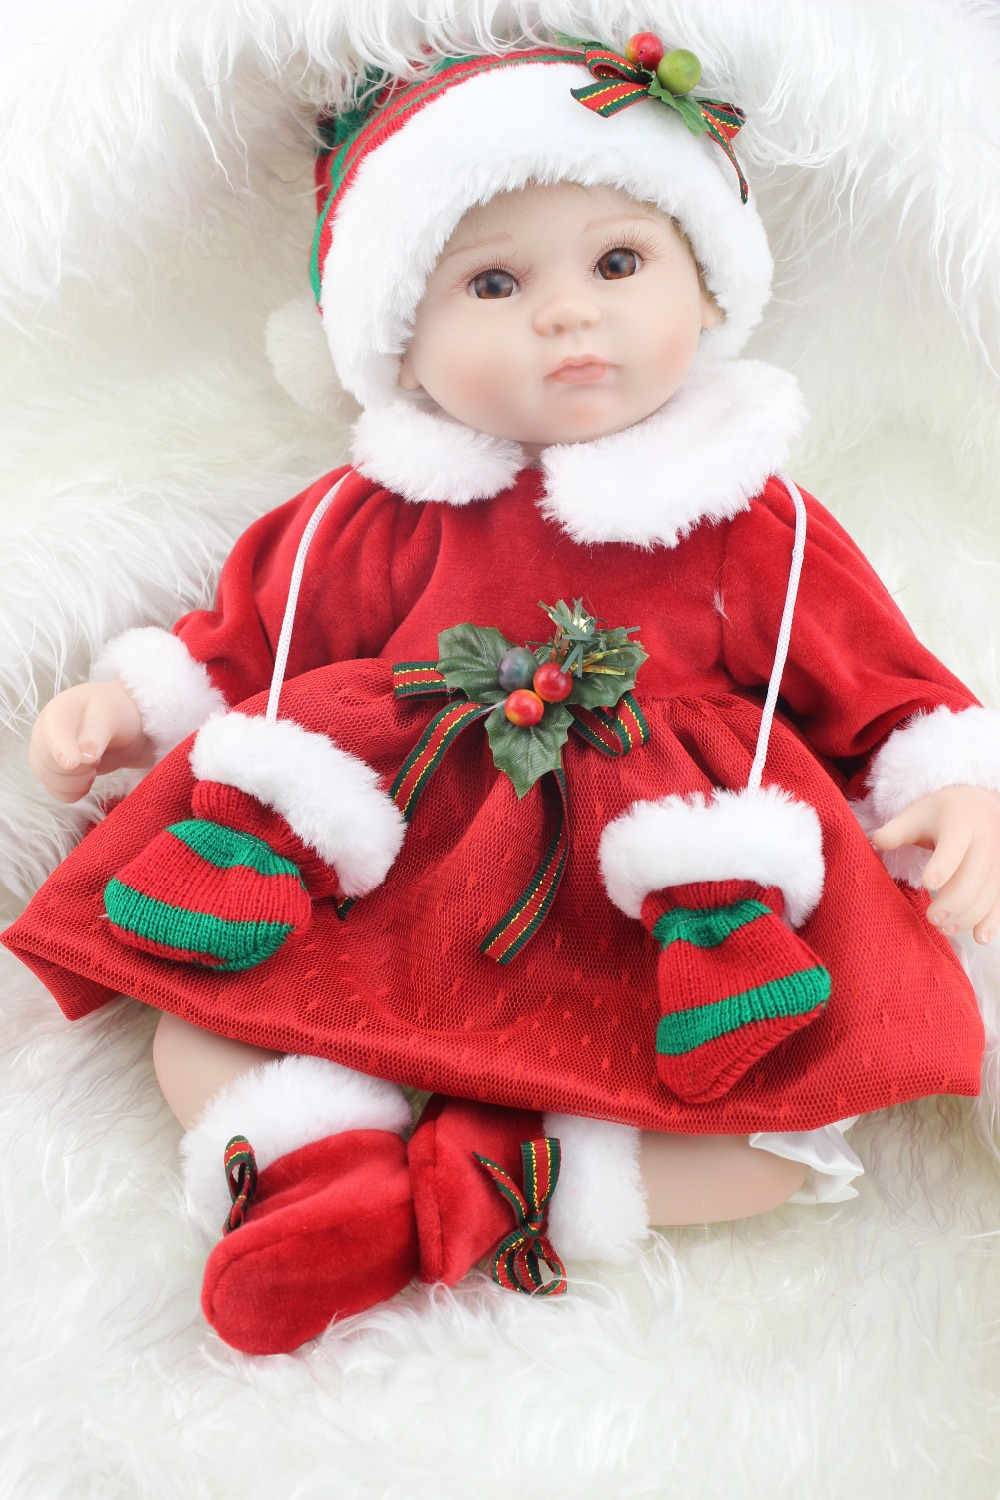 18inches lifelike reborn baby soft silicone vinyl real touch doll lovely newborn baby 17inch Christmas doll or toys good price reborn baby doll kits for 17 baby doll made by soft vinyl real touch 3 4 limbs unpainted blank doll diy reborn doll